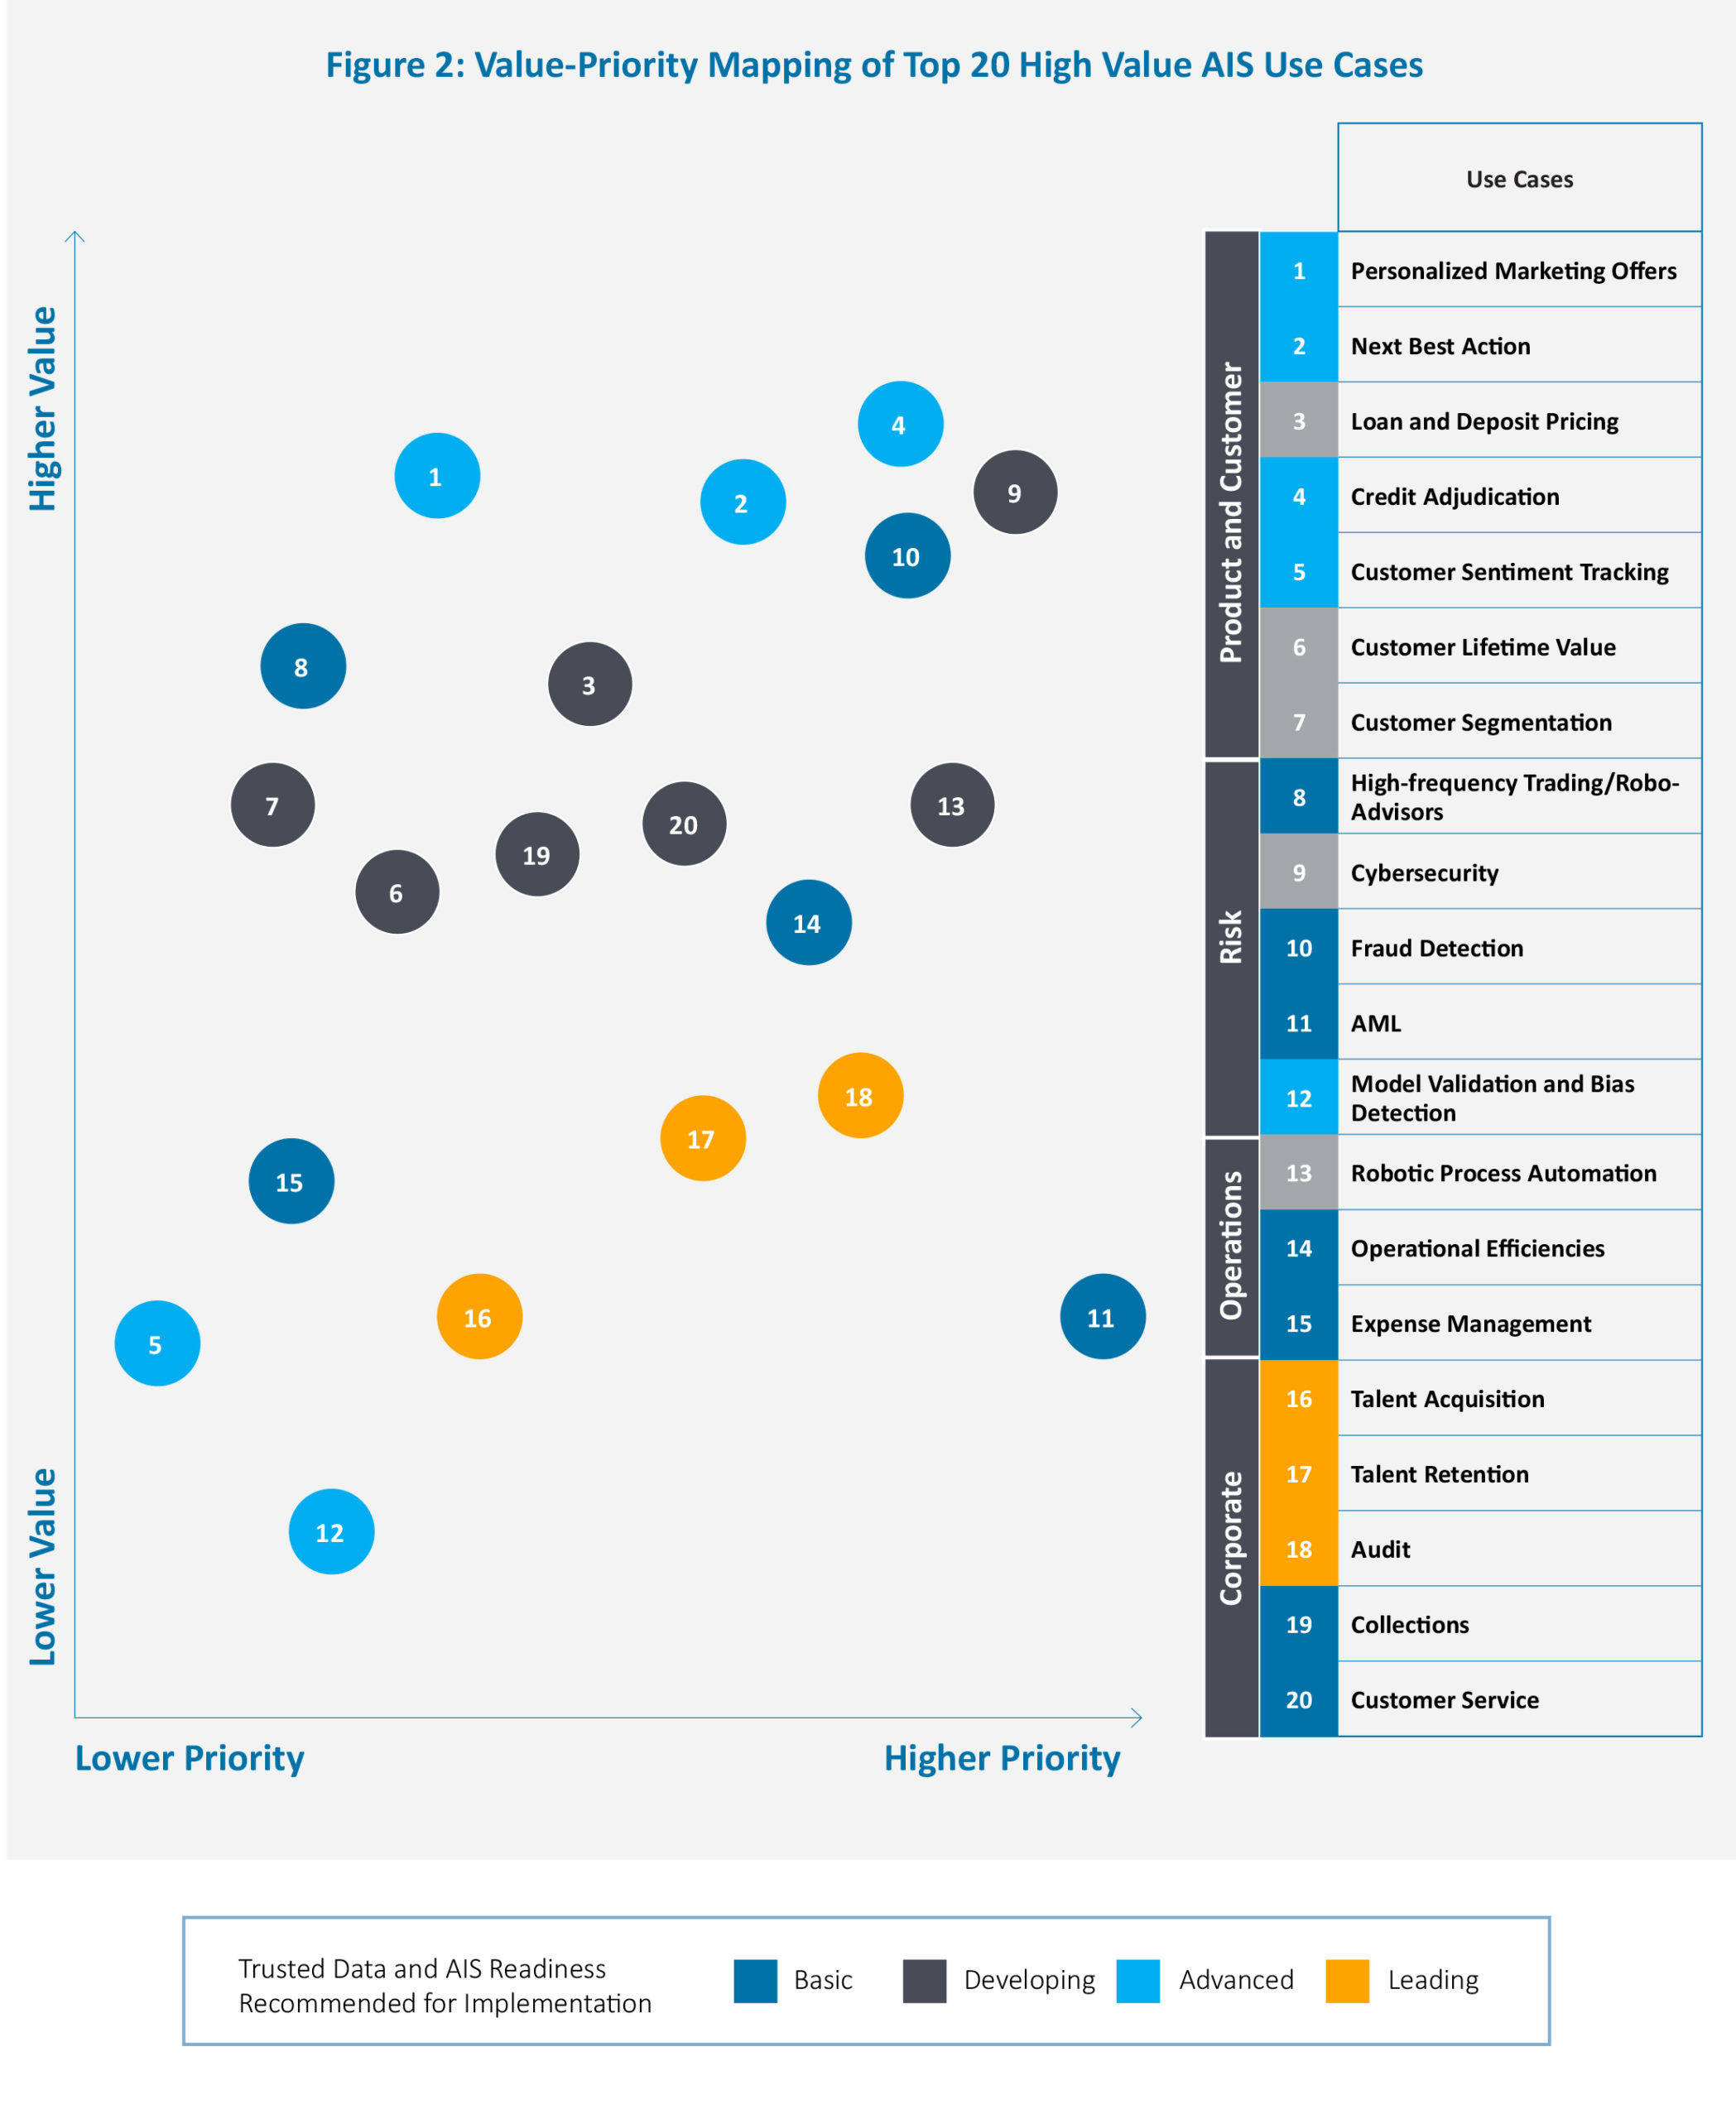 Value-priority mapping of top 20 high value AIS use-cases